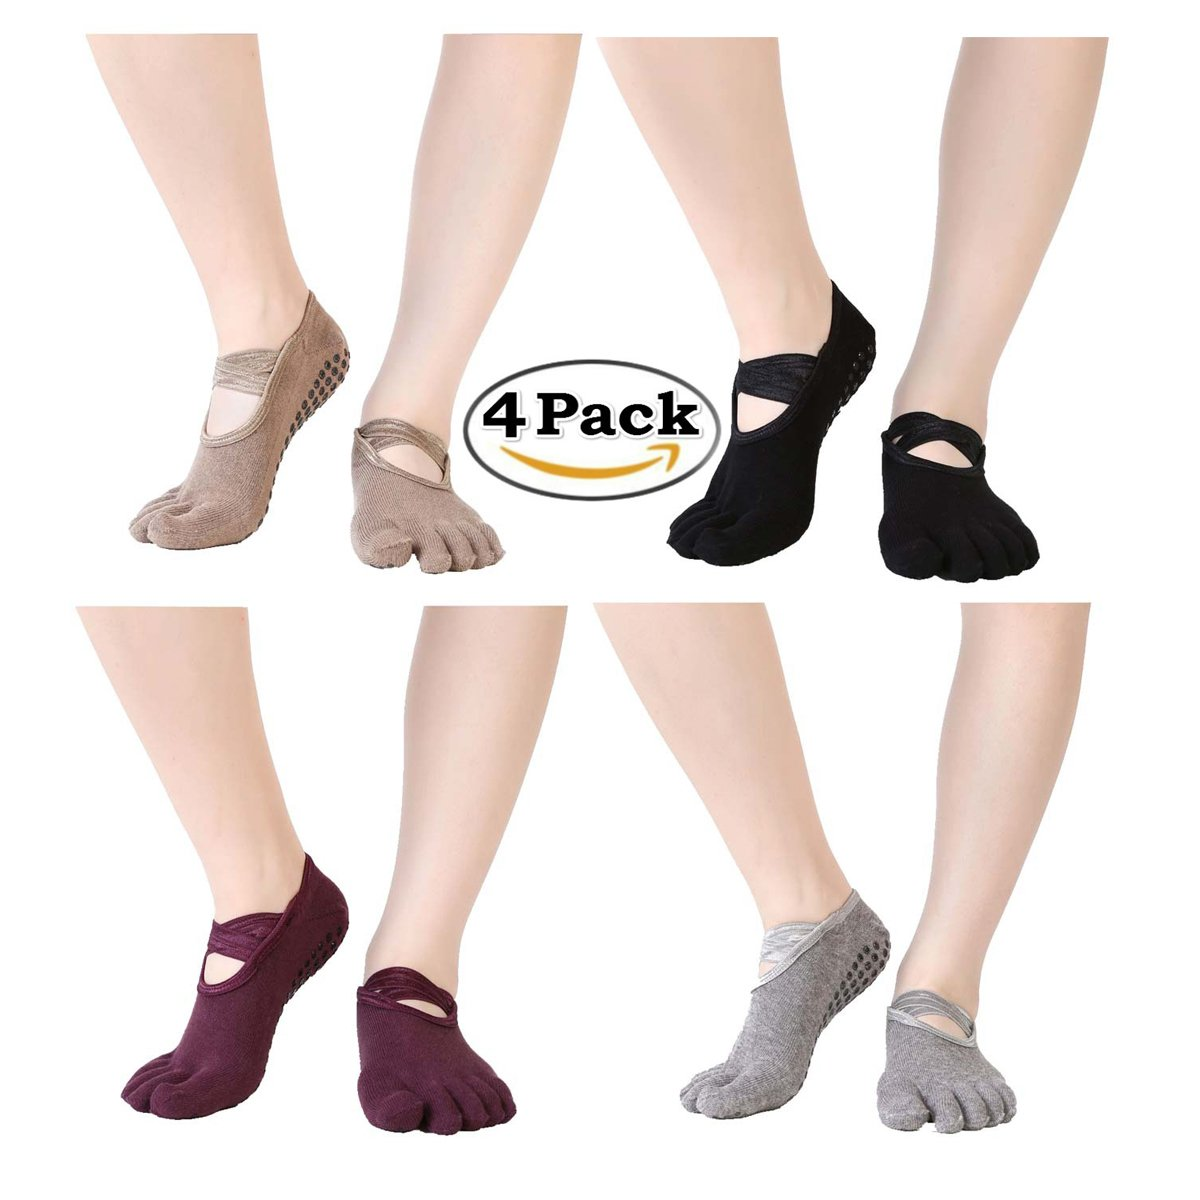 iEase Non-slip Yoga Pilates Barre Sports Cotton Socks for Women,4 Pairs Yoga Socks with Grips